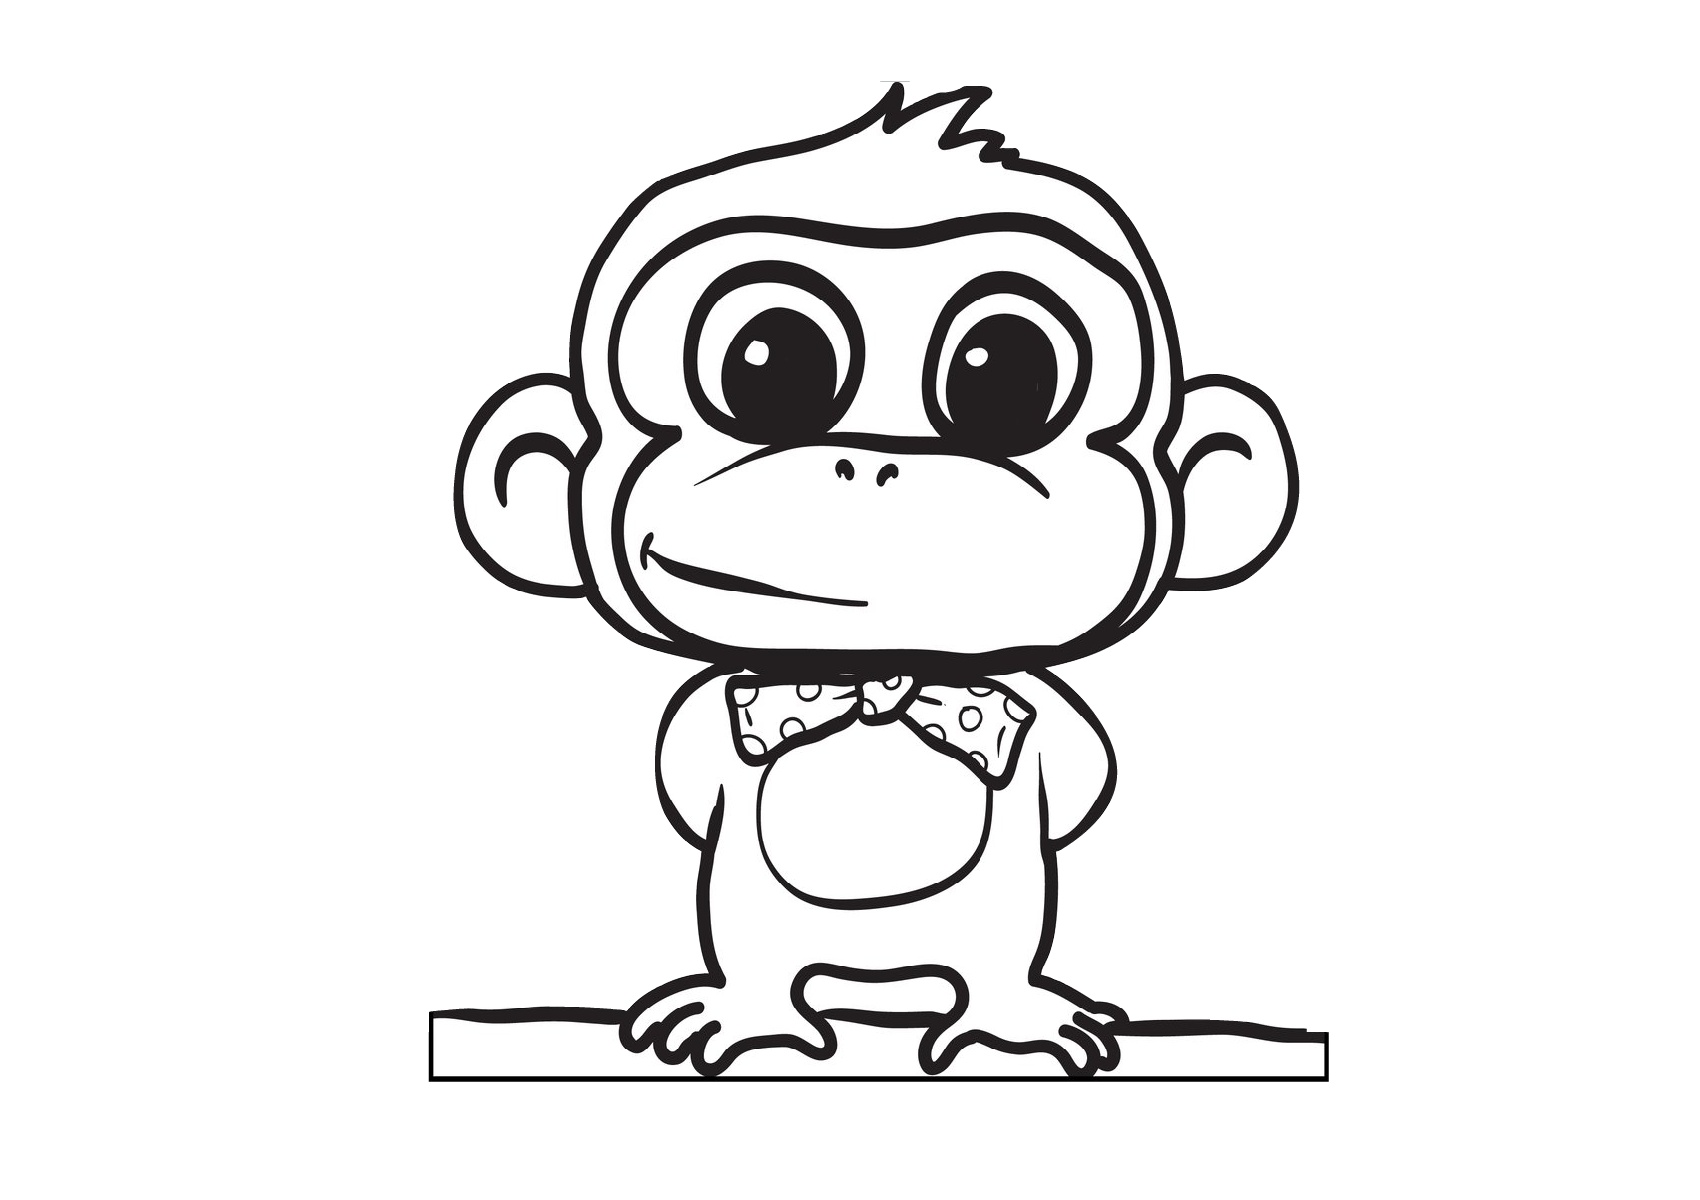 Printable Cute Cartoon Baby Monkey Coloring Pages for Kids